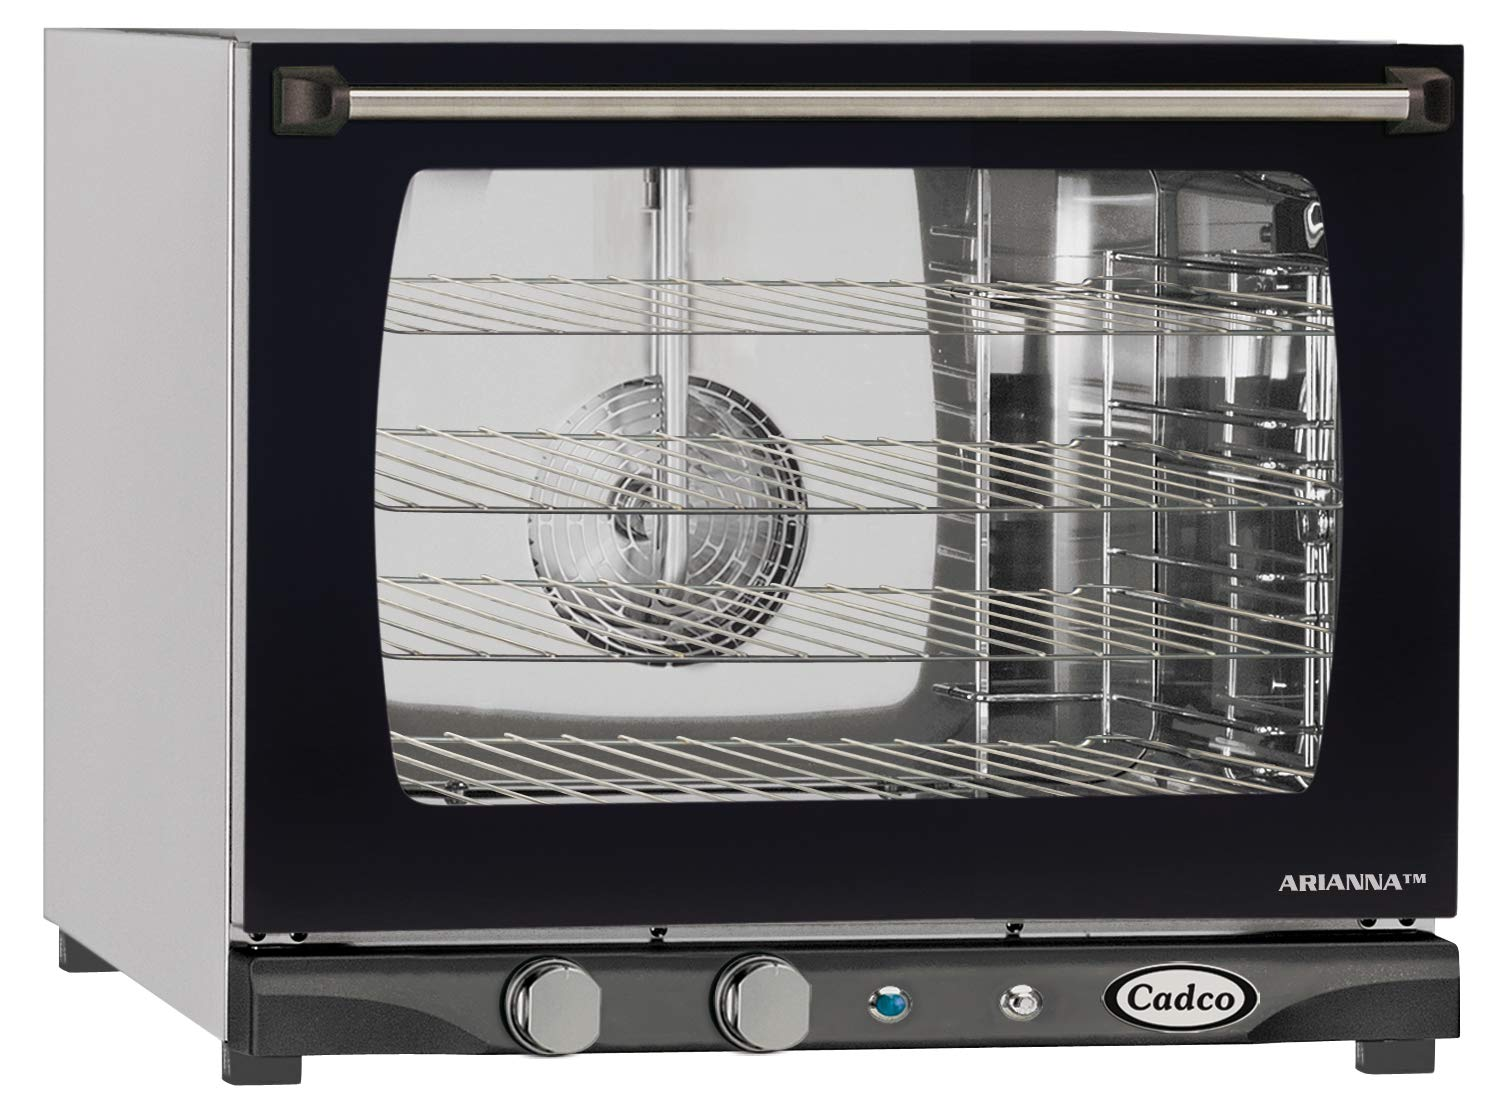 B0027AL6W2 Cadco XAF-133 Half Size Convection Oven with Manual Controls and Humidity, 208-240-Volt/2700-Watt, Stainless/Black 71Y2BzeYtgFL._SL1500_